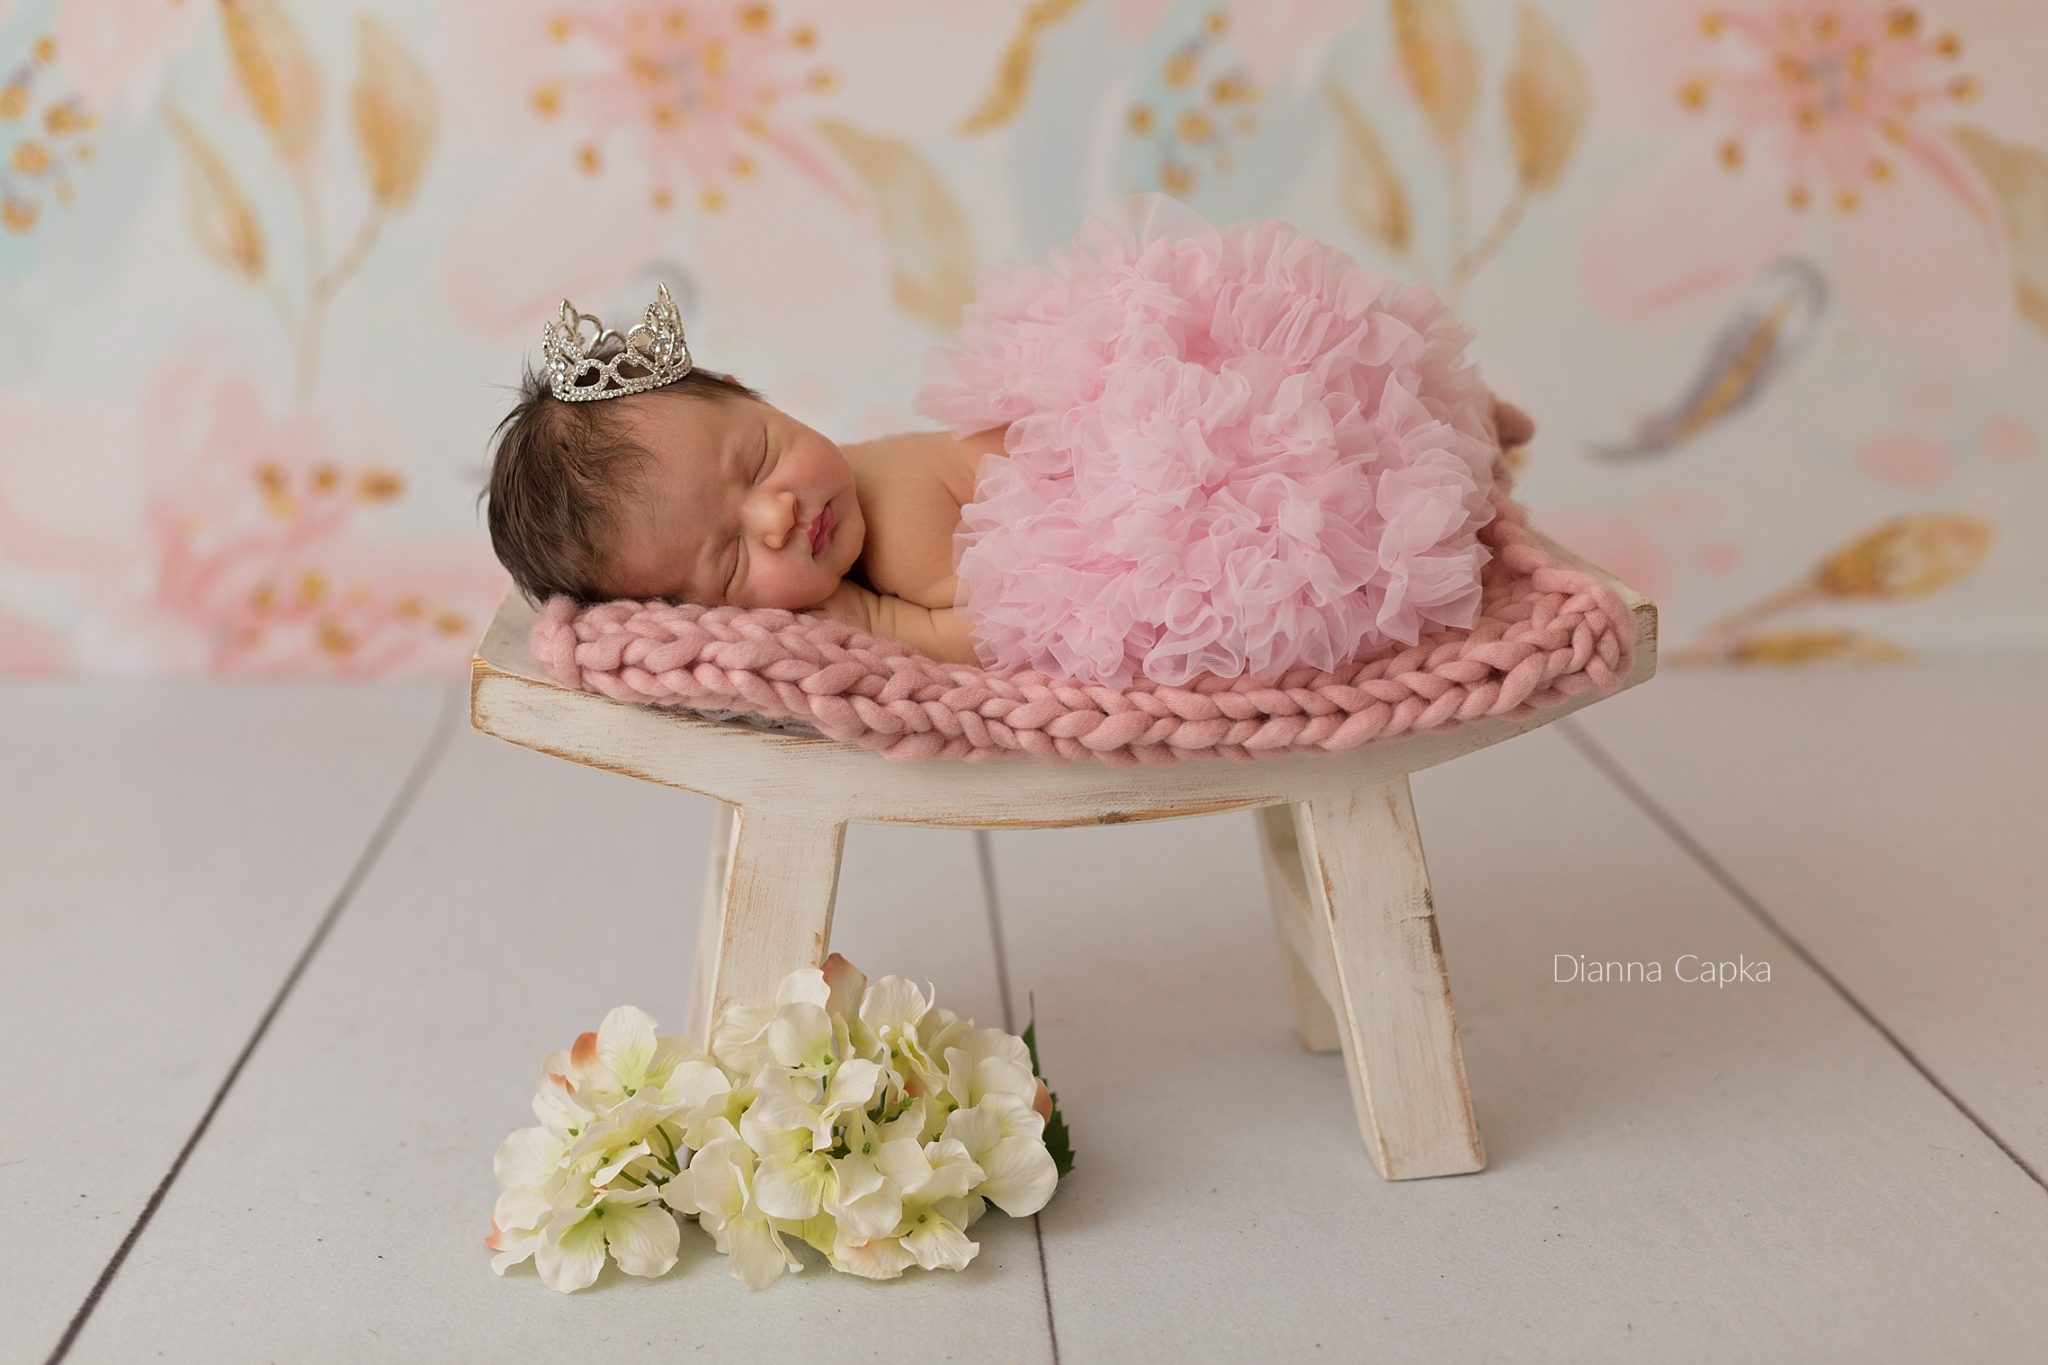 Lancaster newborn photographer ballernina baby